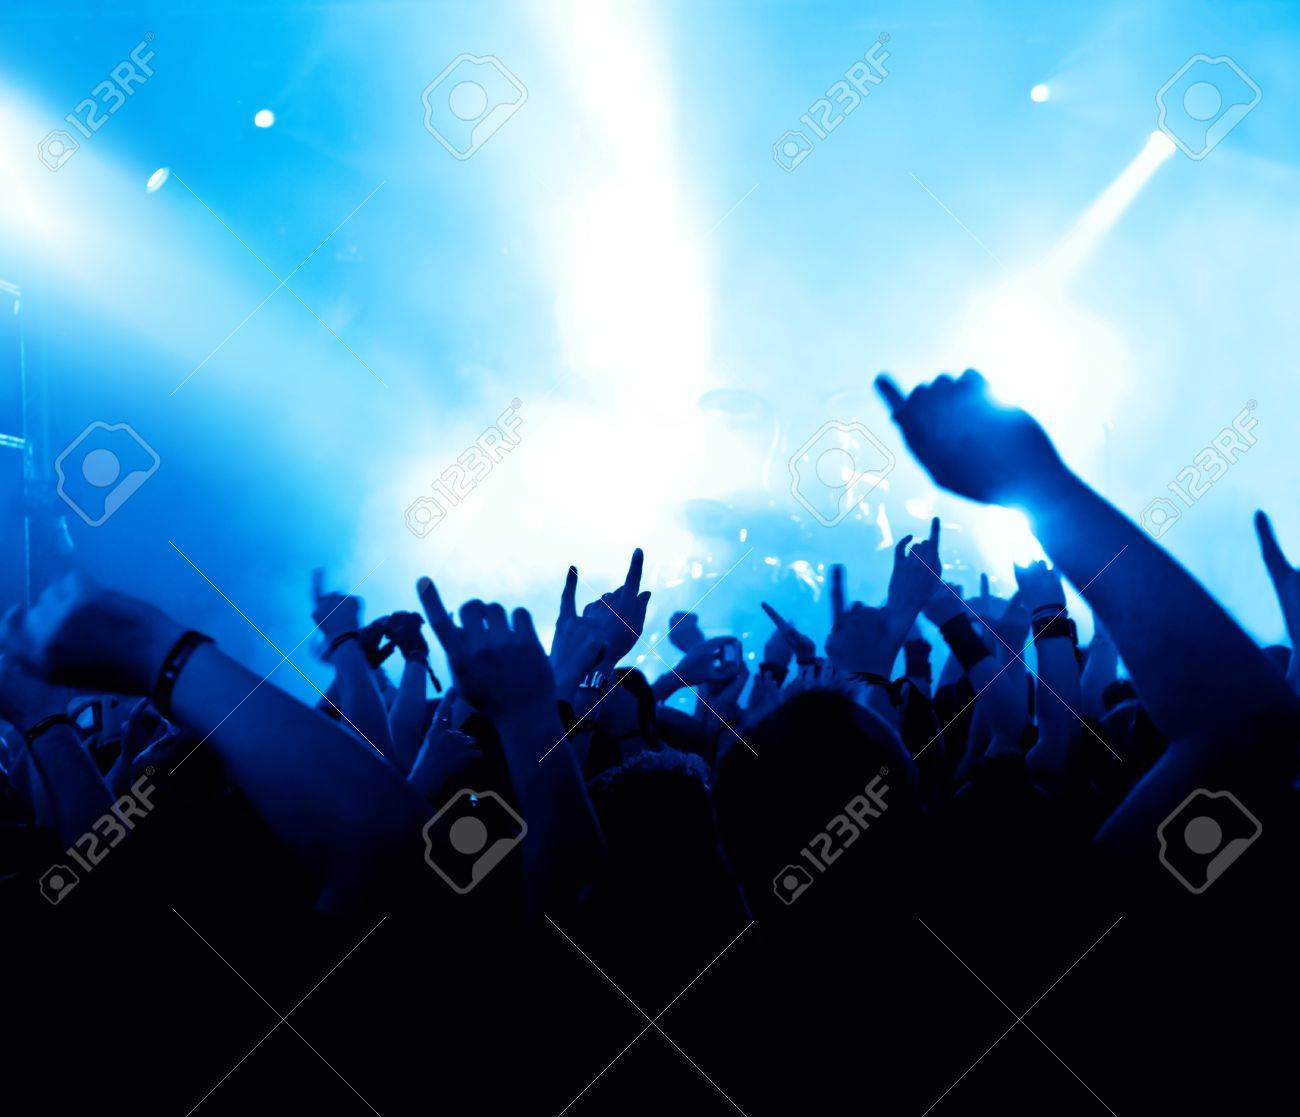 silhouettes of concert crowd in front of bright stage lights Stock Photo - 9954494